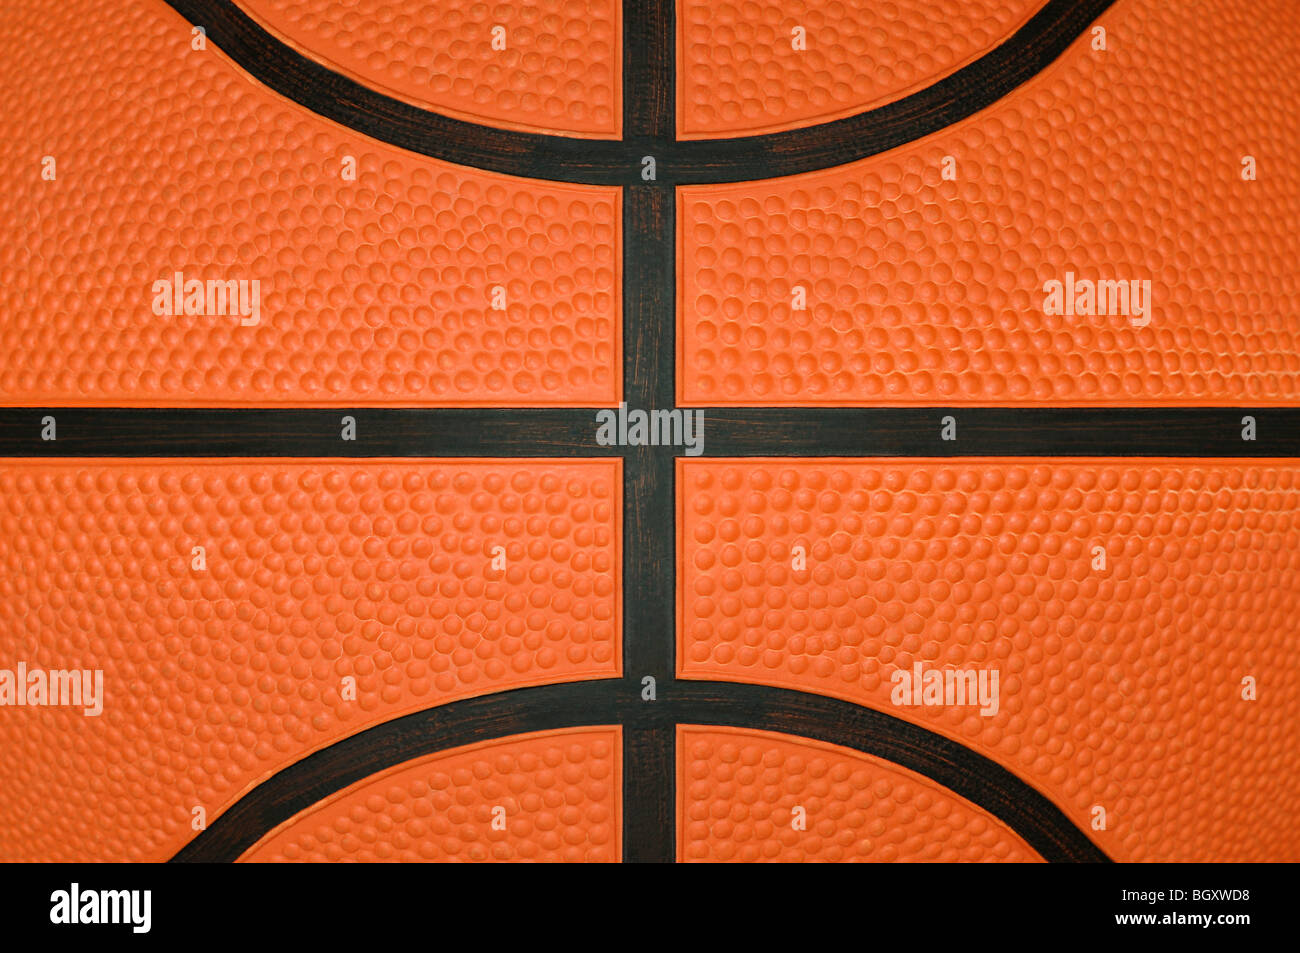 Basketball Close Up - Stock Image